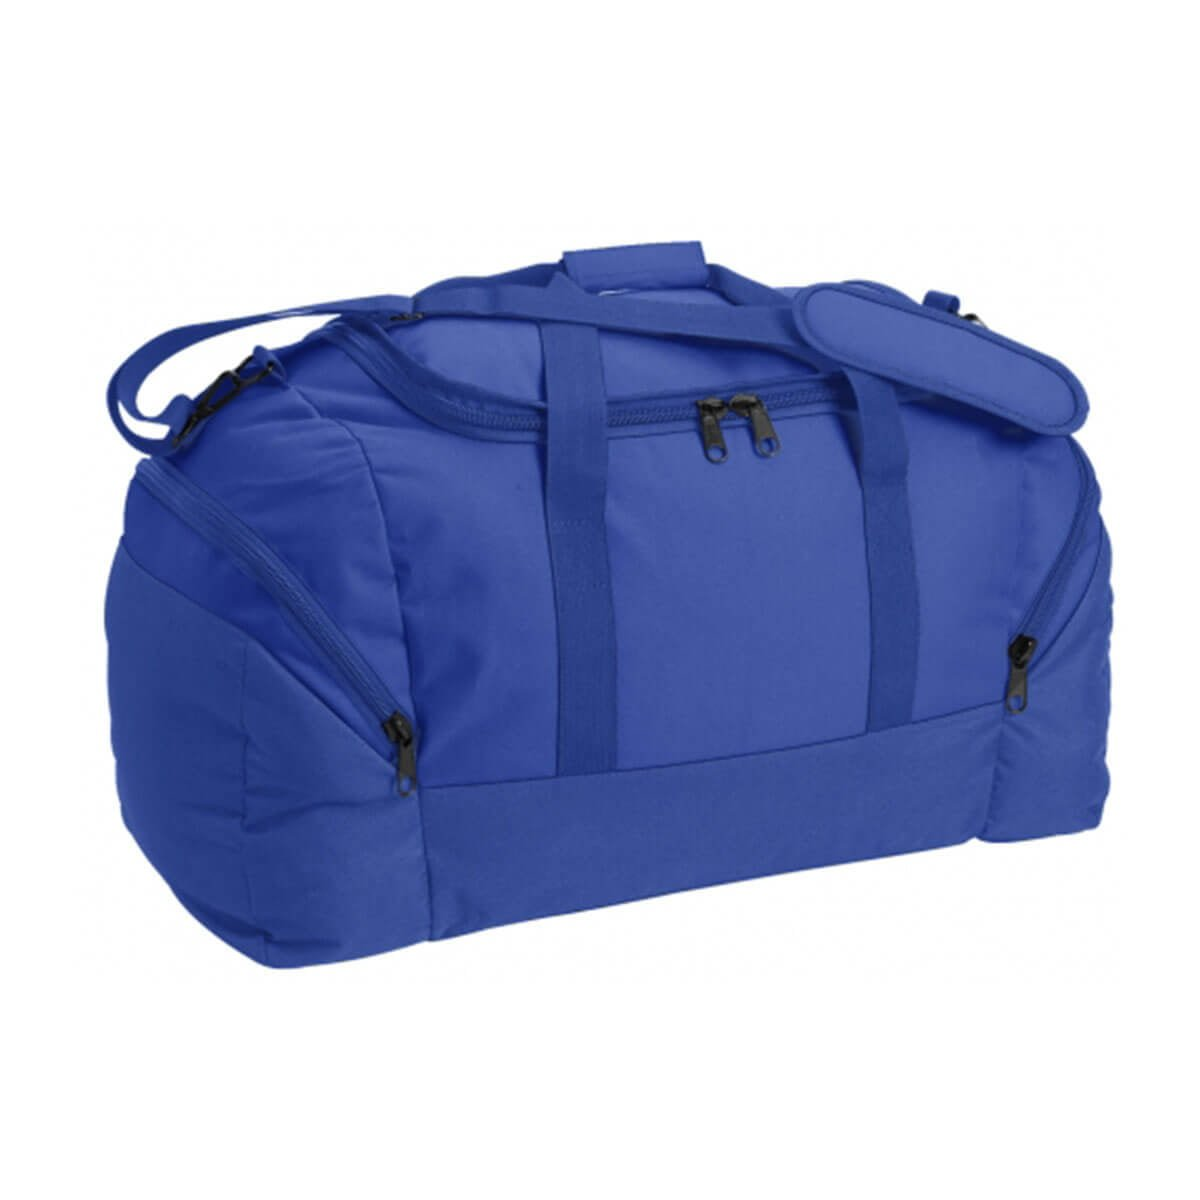 Team Sports Bag-Royal